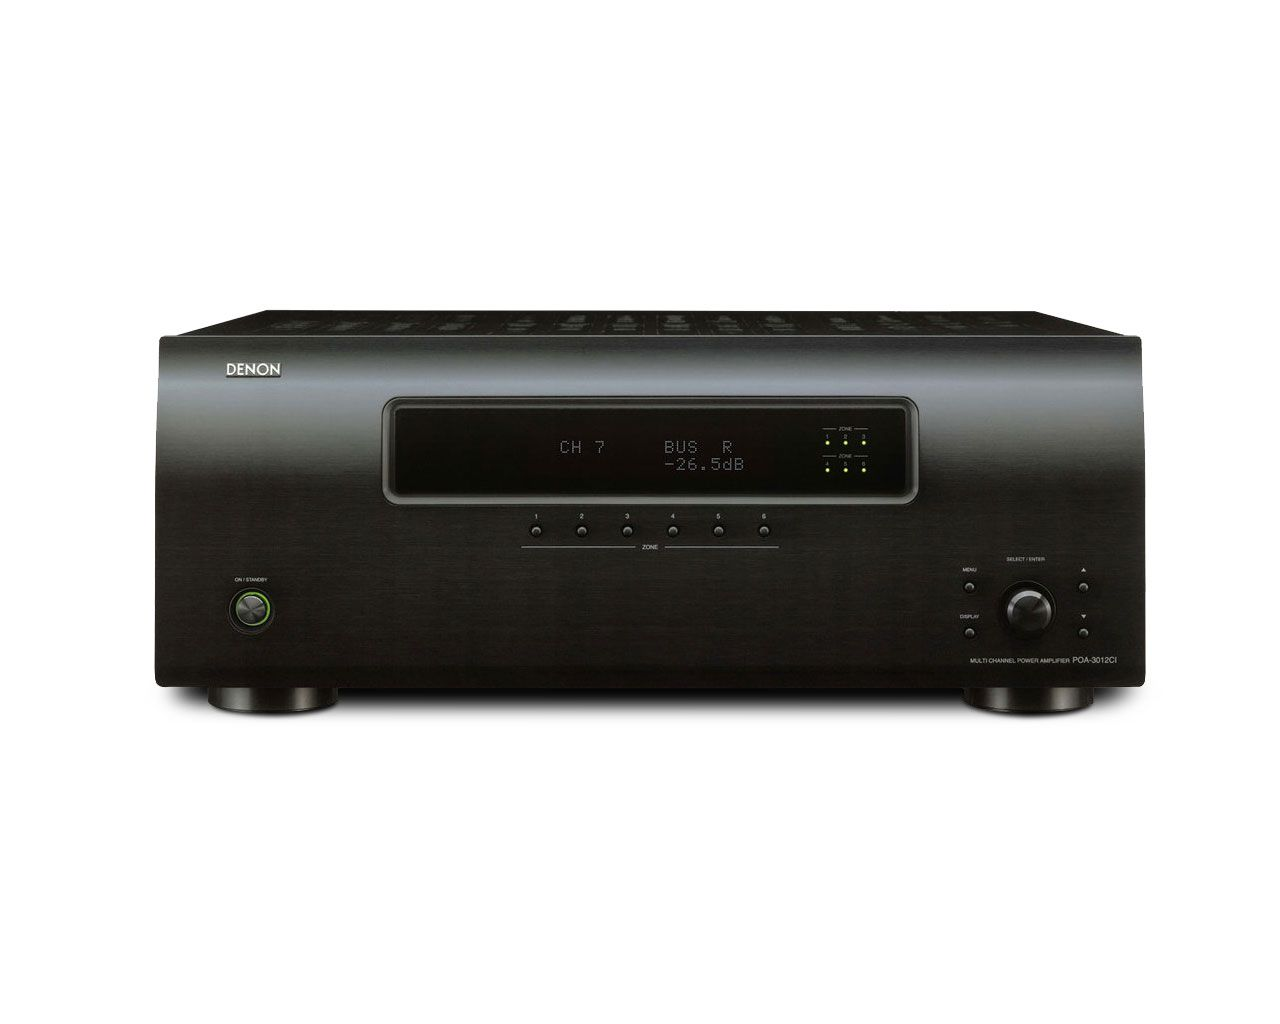 Buy whole house audio amplifiers - DENON POA-3012CI 12-Channel Multi-Zone Audio Distribution Amplifier